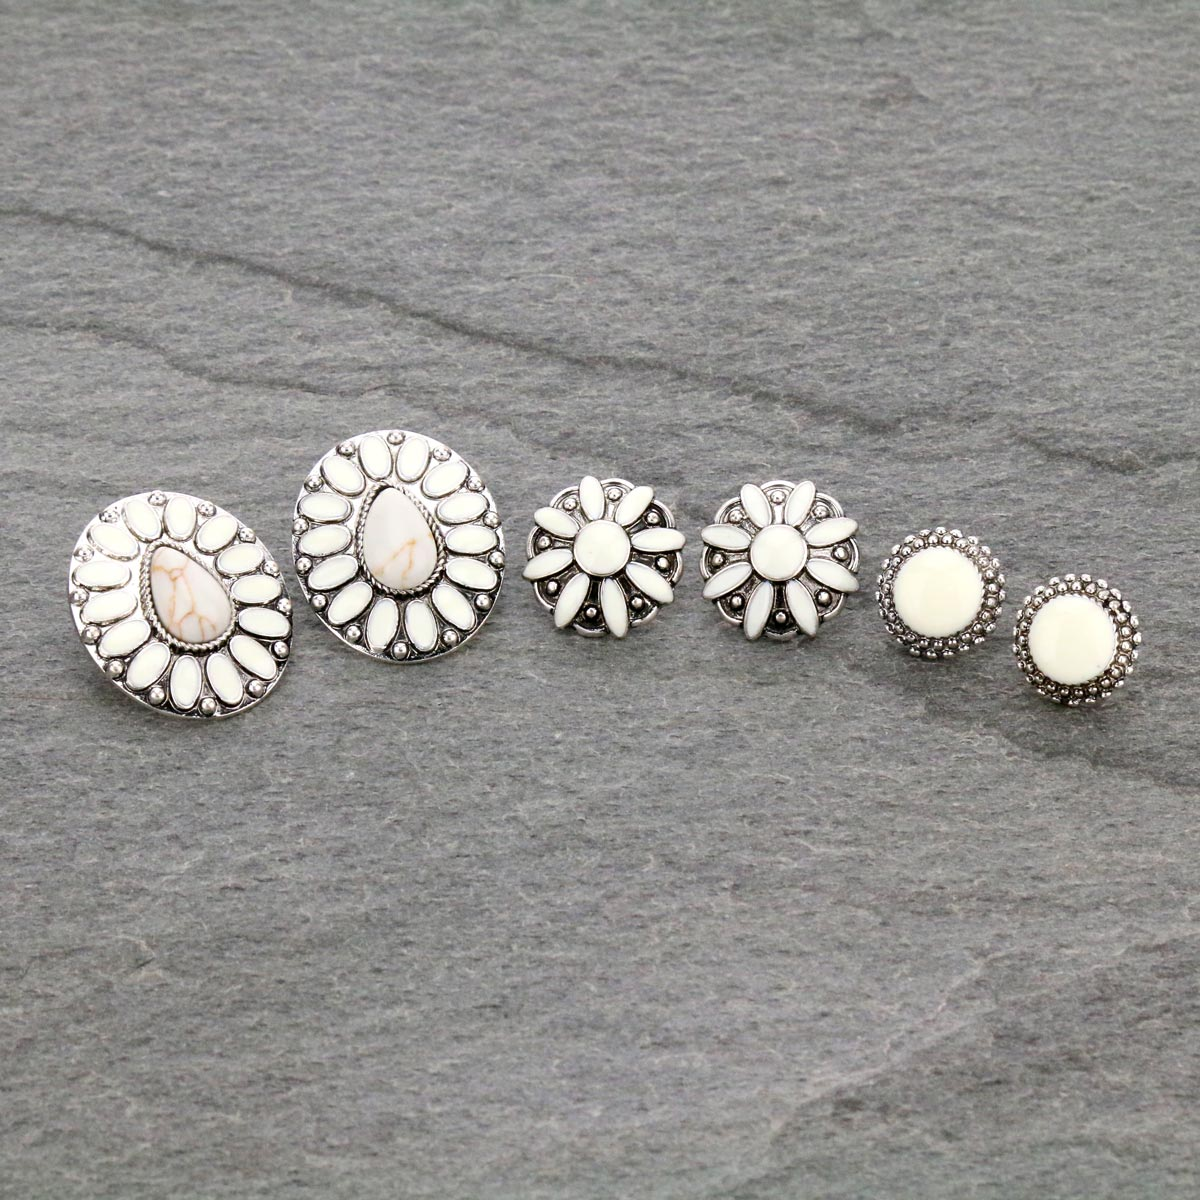 3 Pair Concho Stud Earrings Set-ER1120/NAT